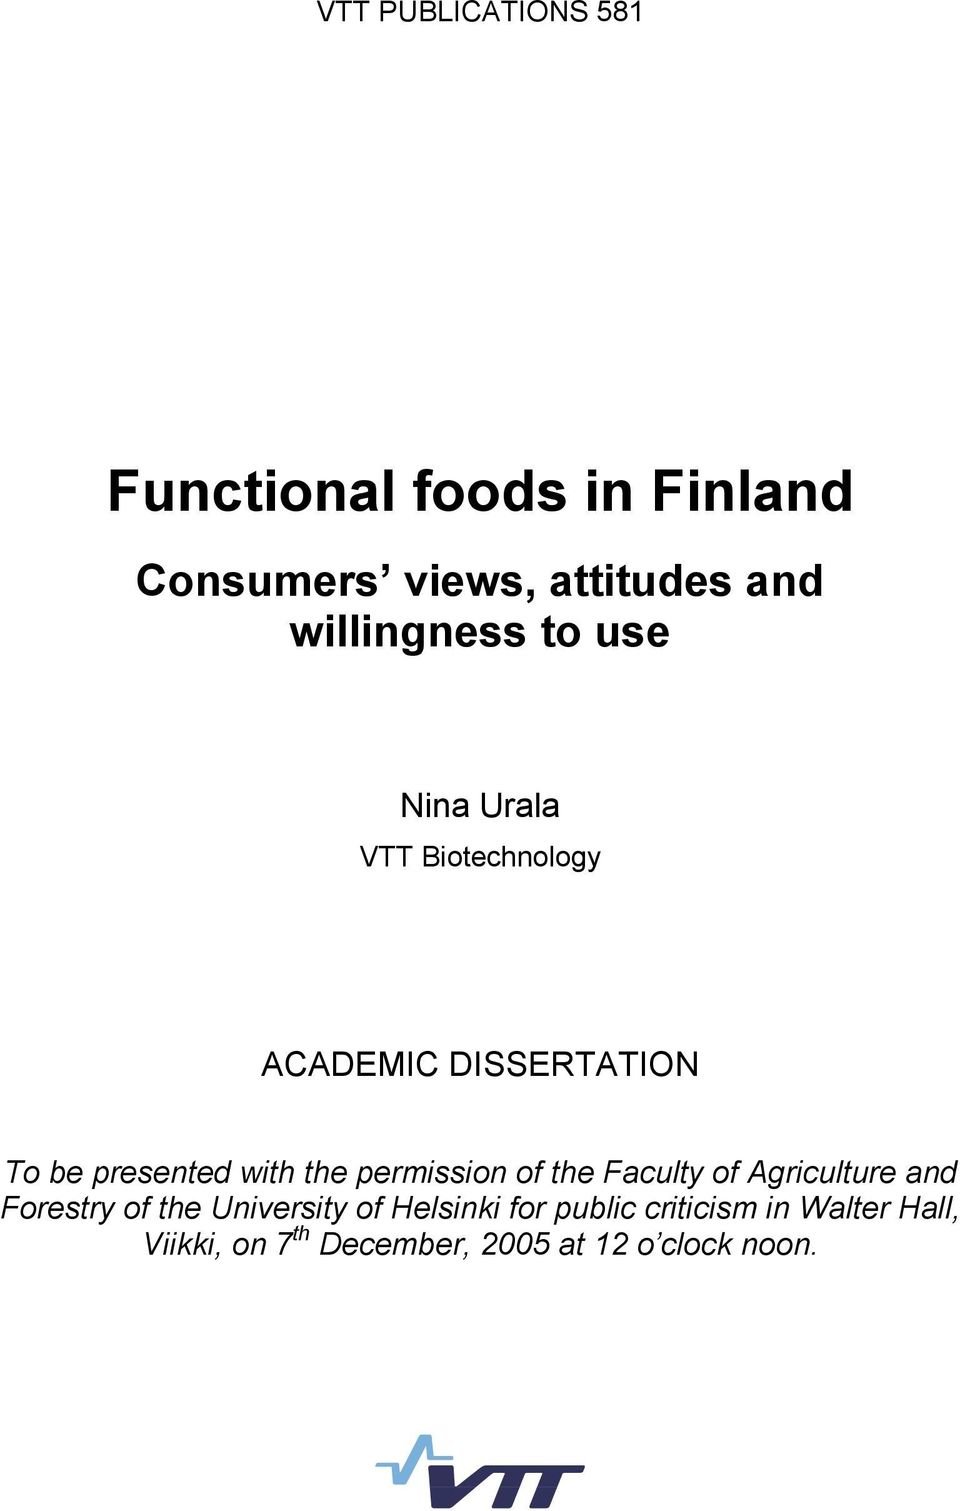 with the permission of the Faculty of Agriculture and Forestry of the University of